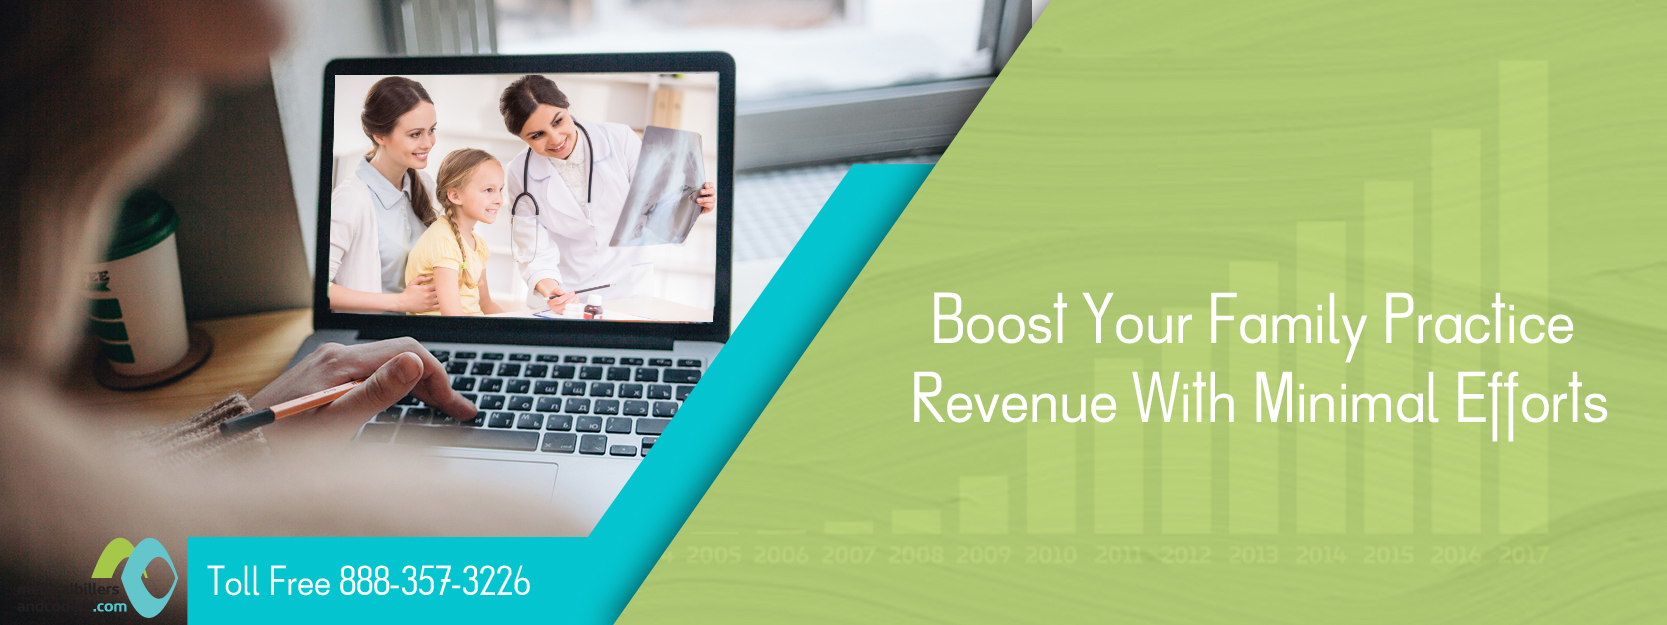 blog-boost-your-family-practice-revenue-with-minimal-efforts